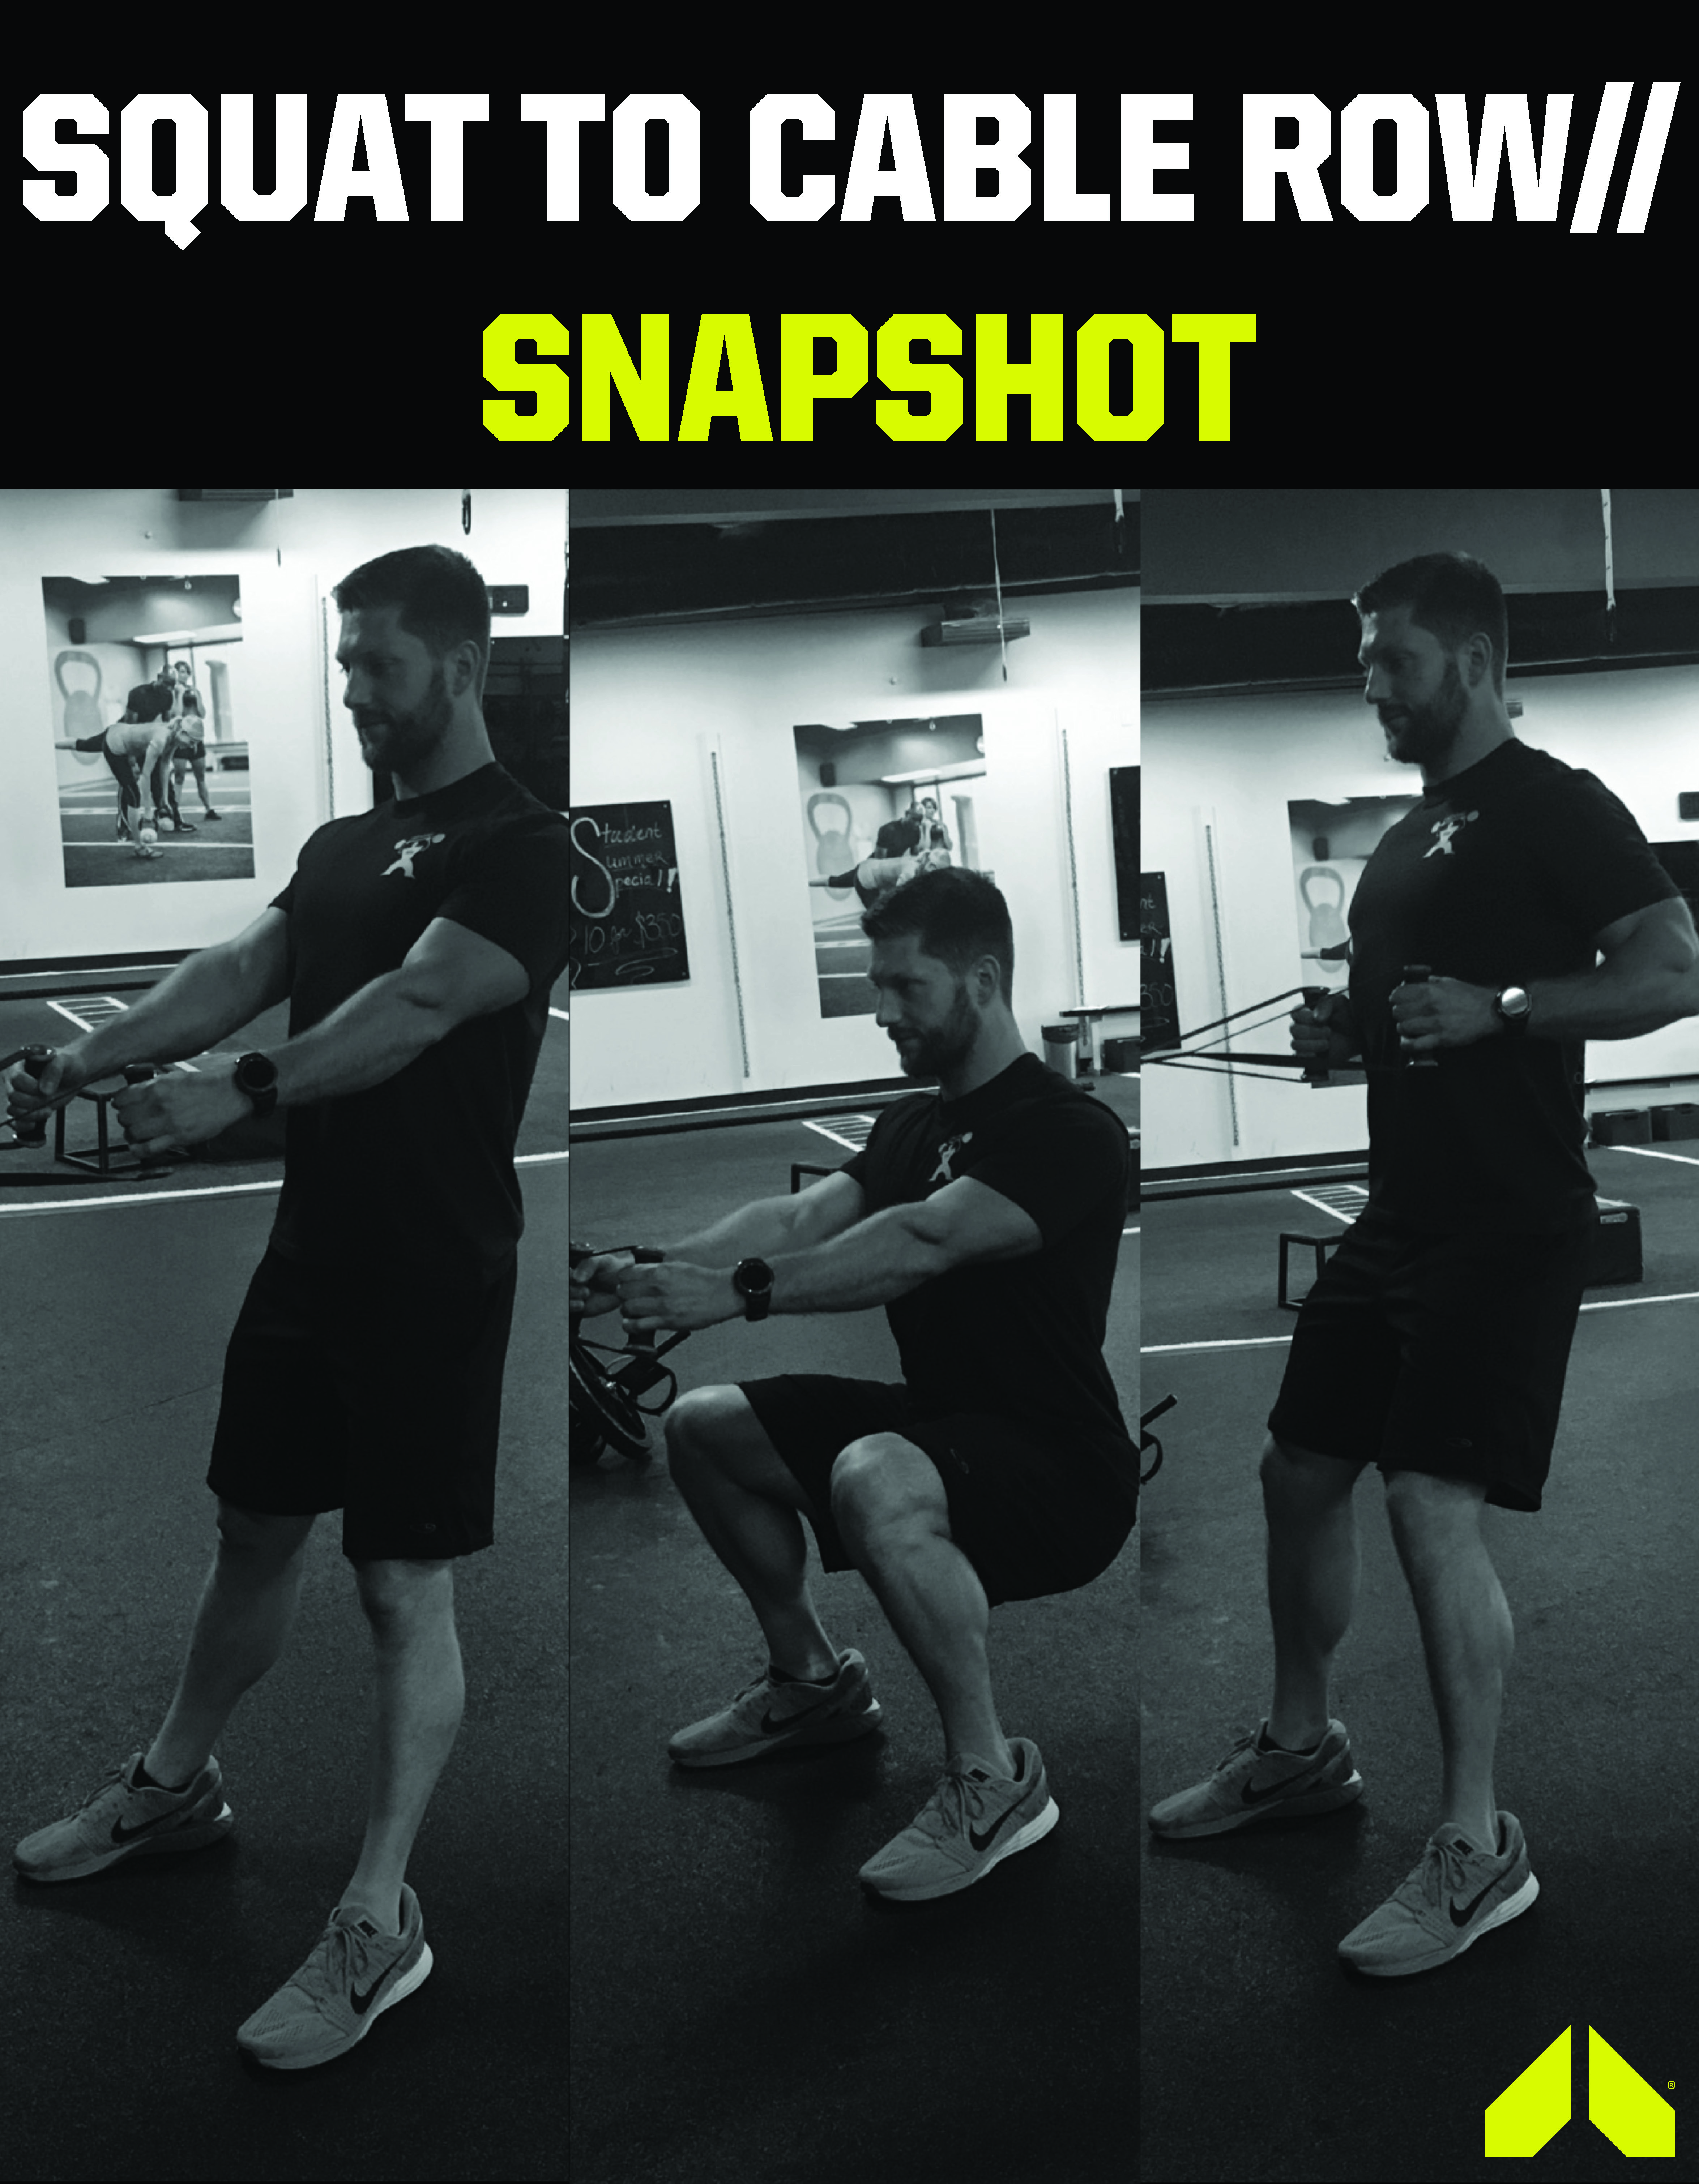 Squat to Cable Row